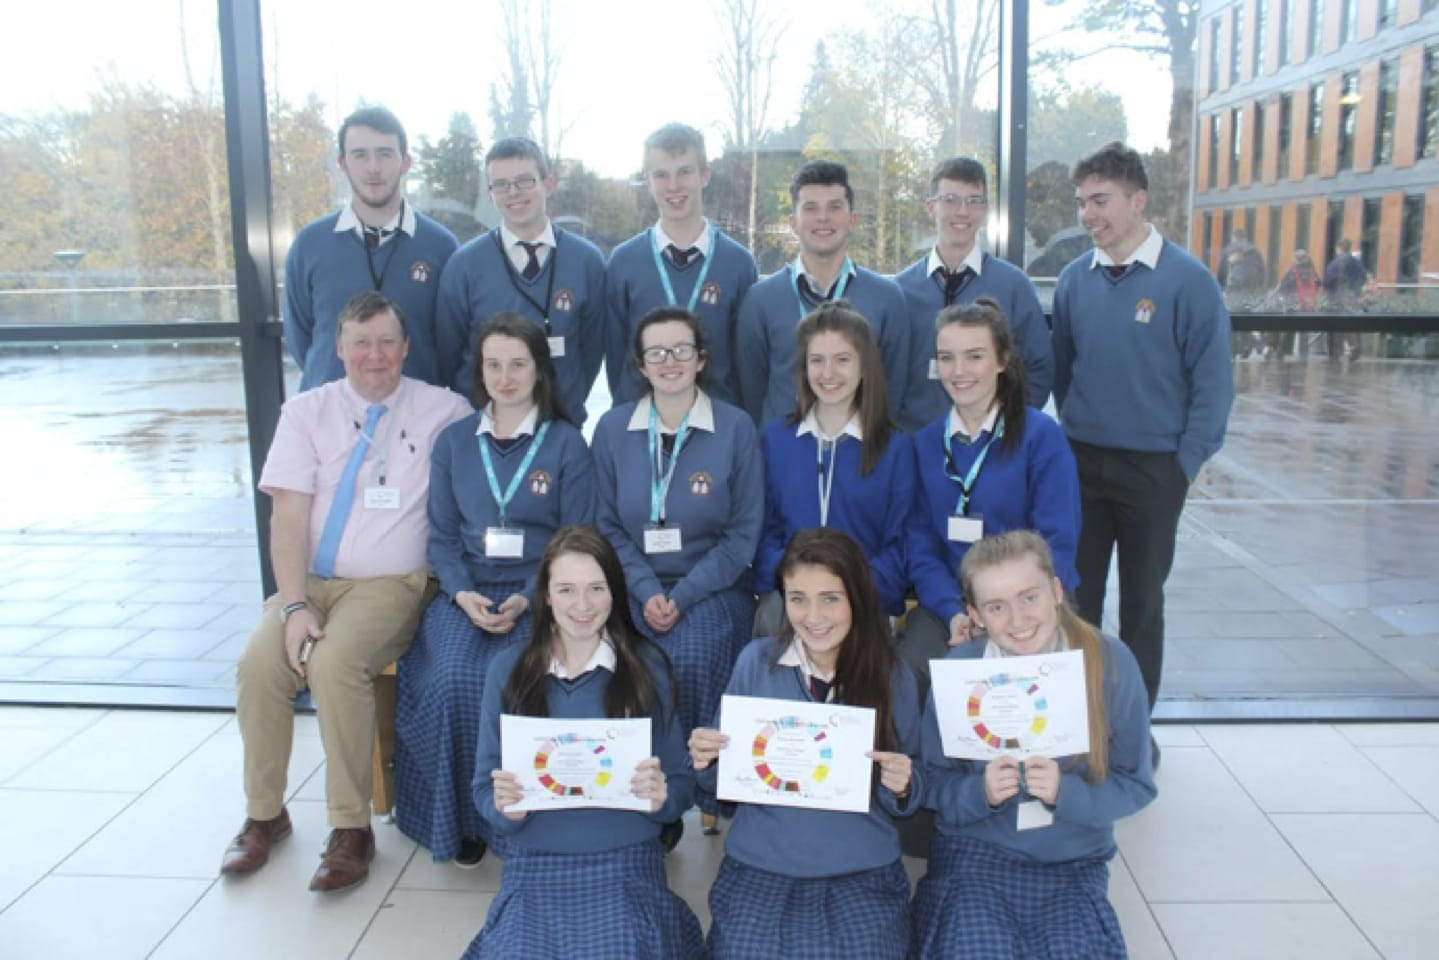 Nov 2016: Senior Cycle Students from Desmond College secondary school with their teacher Donal Enright at the Inaugural Model Start Up Conference in UCC